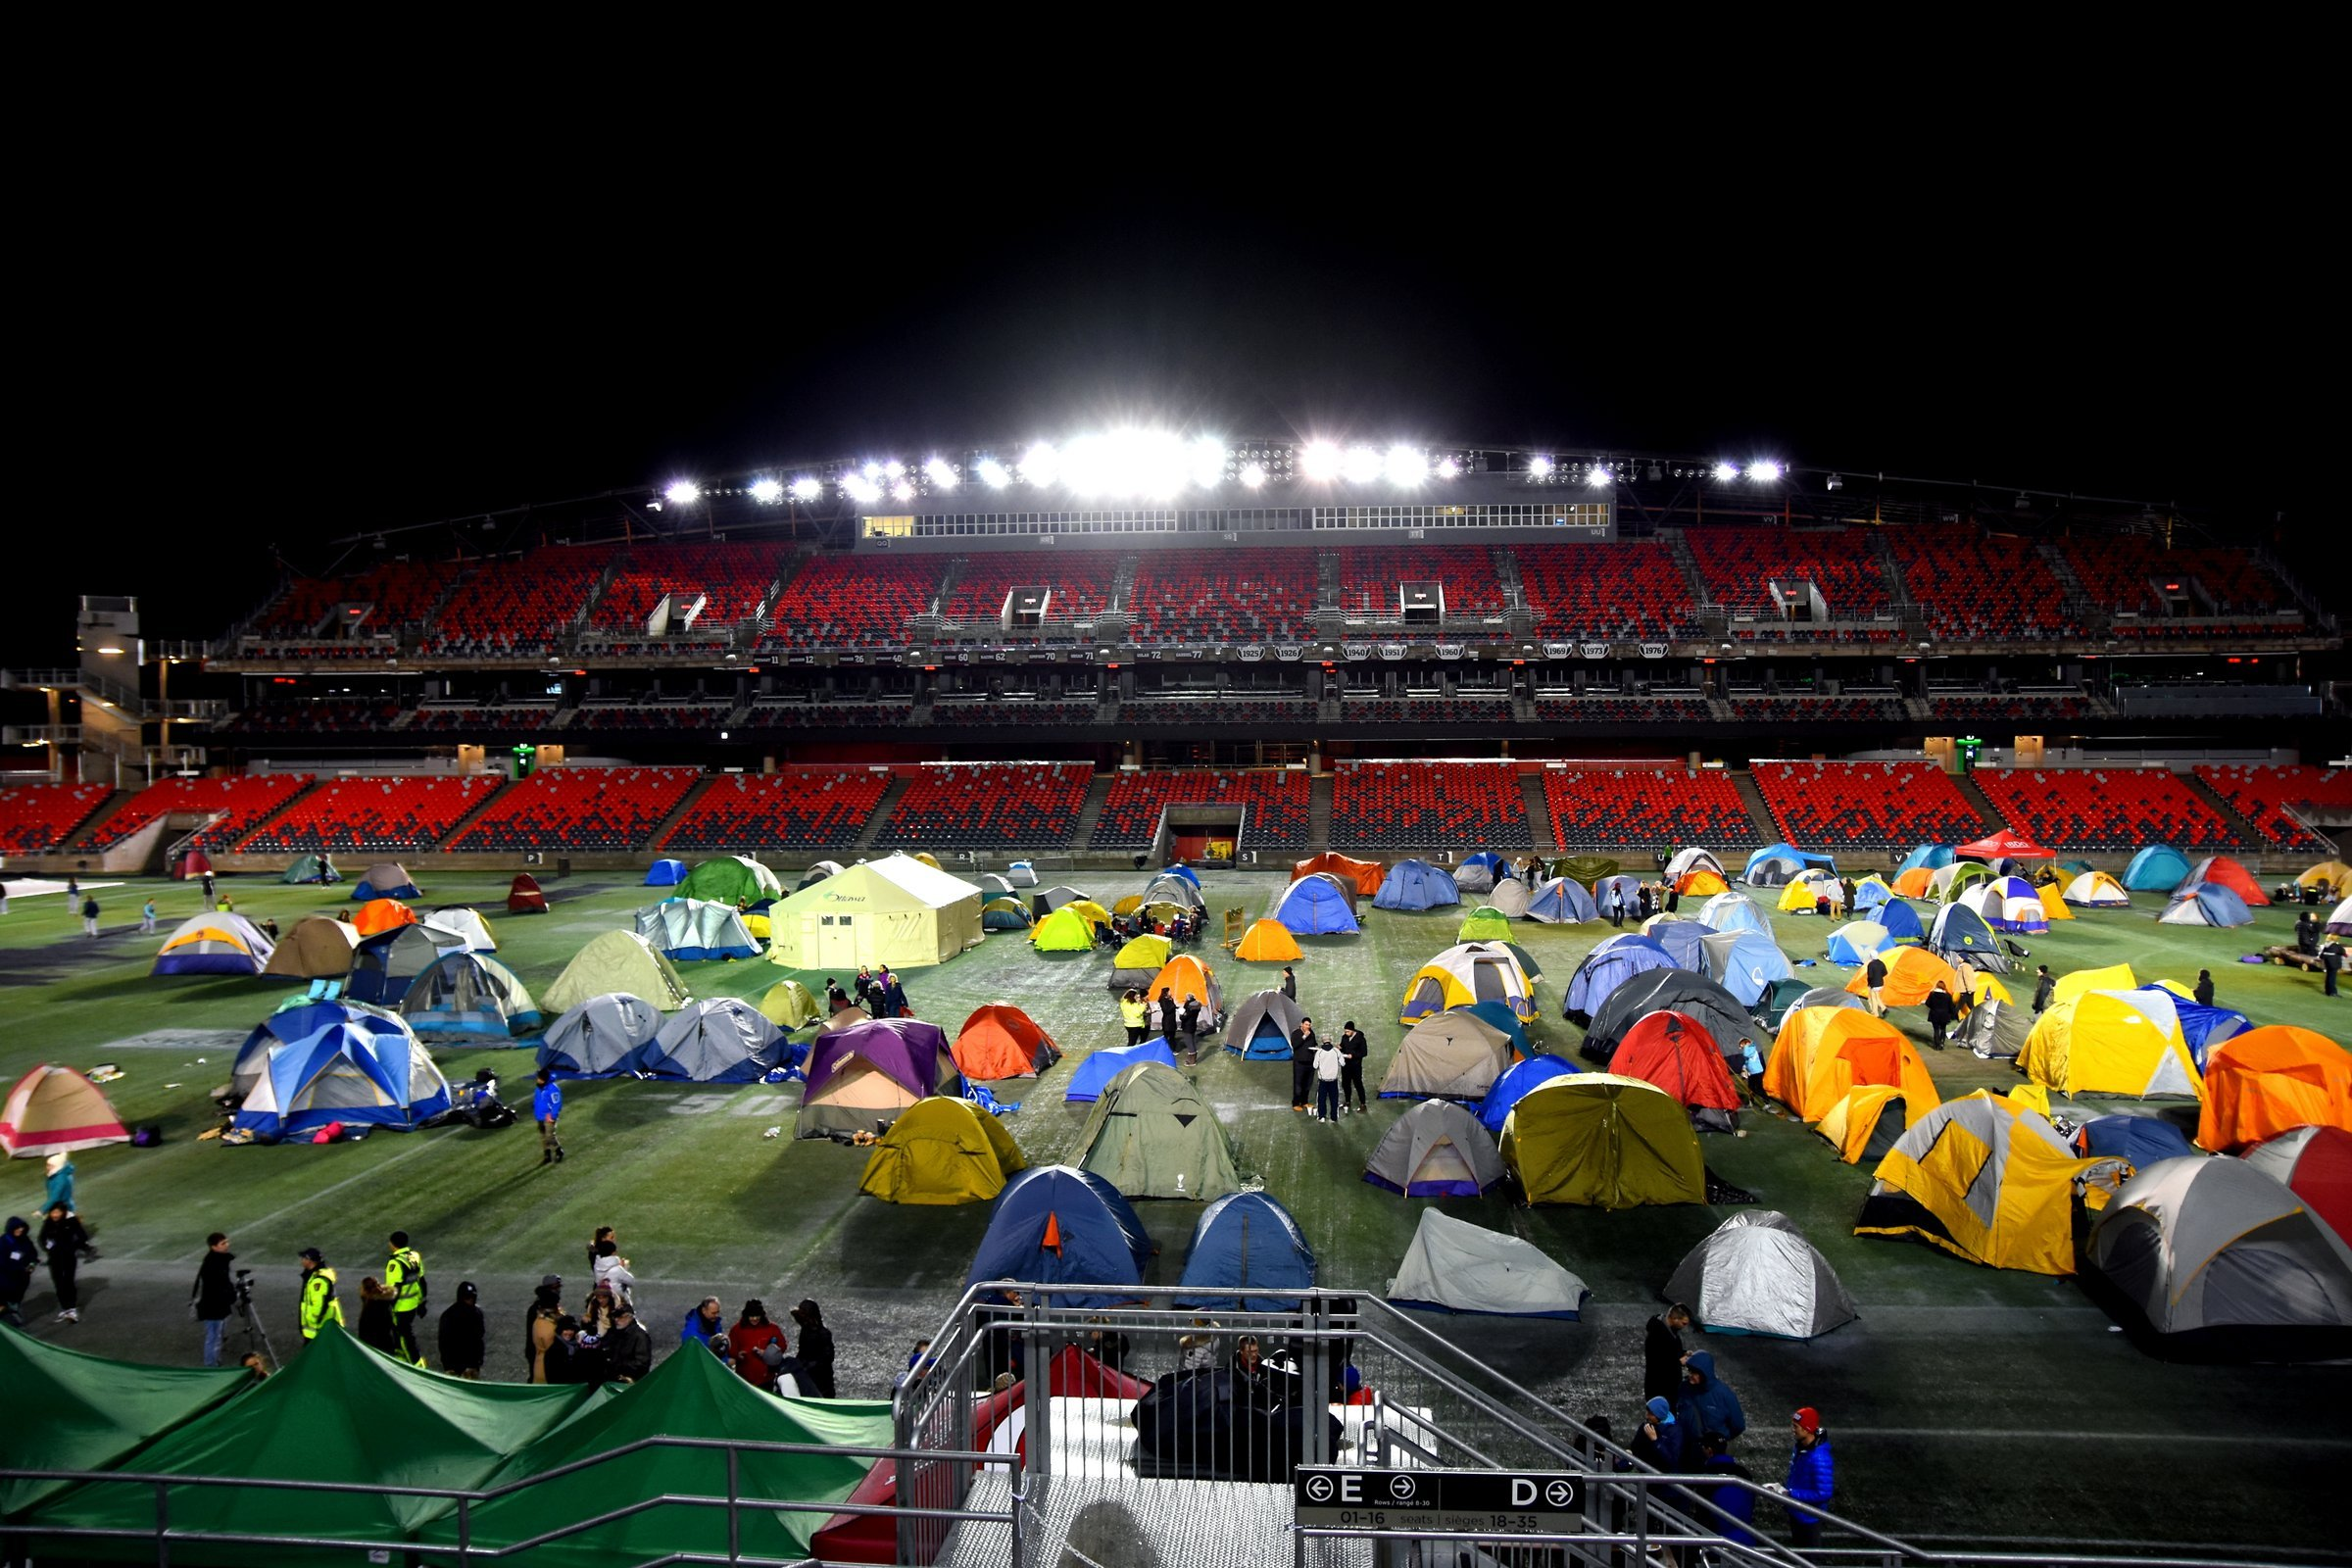 Image of a stadium with camping tents set up on the field